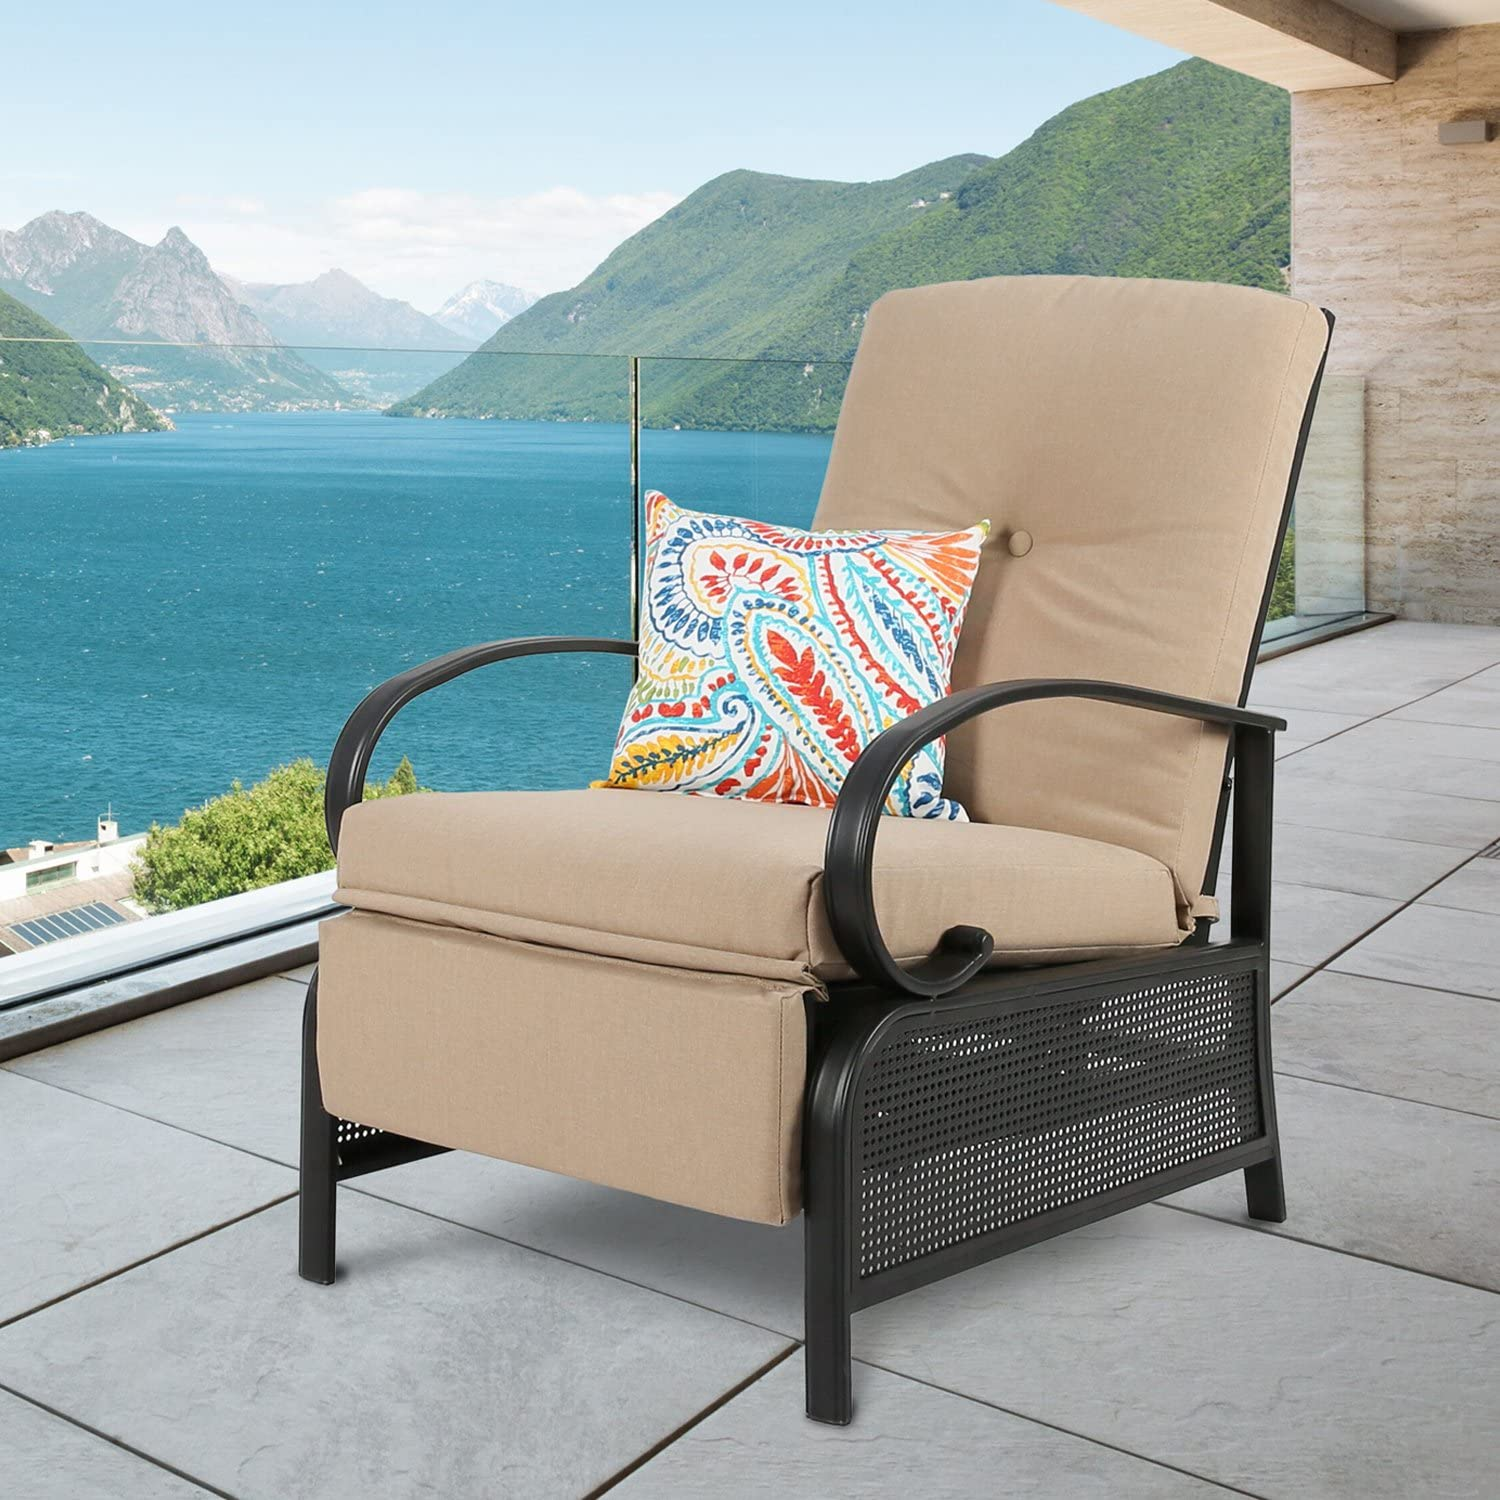 Ulax Furniture Patio Recliner Chair Automatic Adjustable Back Outdoor Lounge Chair with 100% Olefin Cushion (Beige)